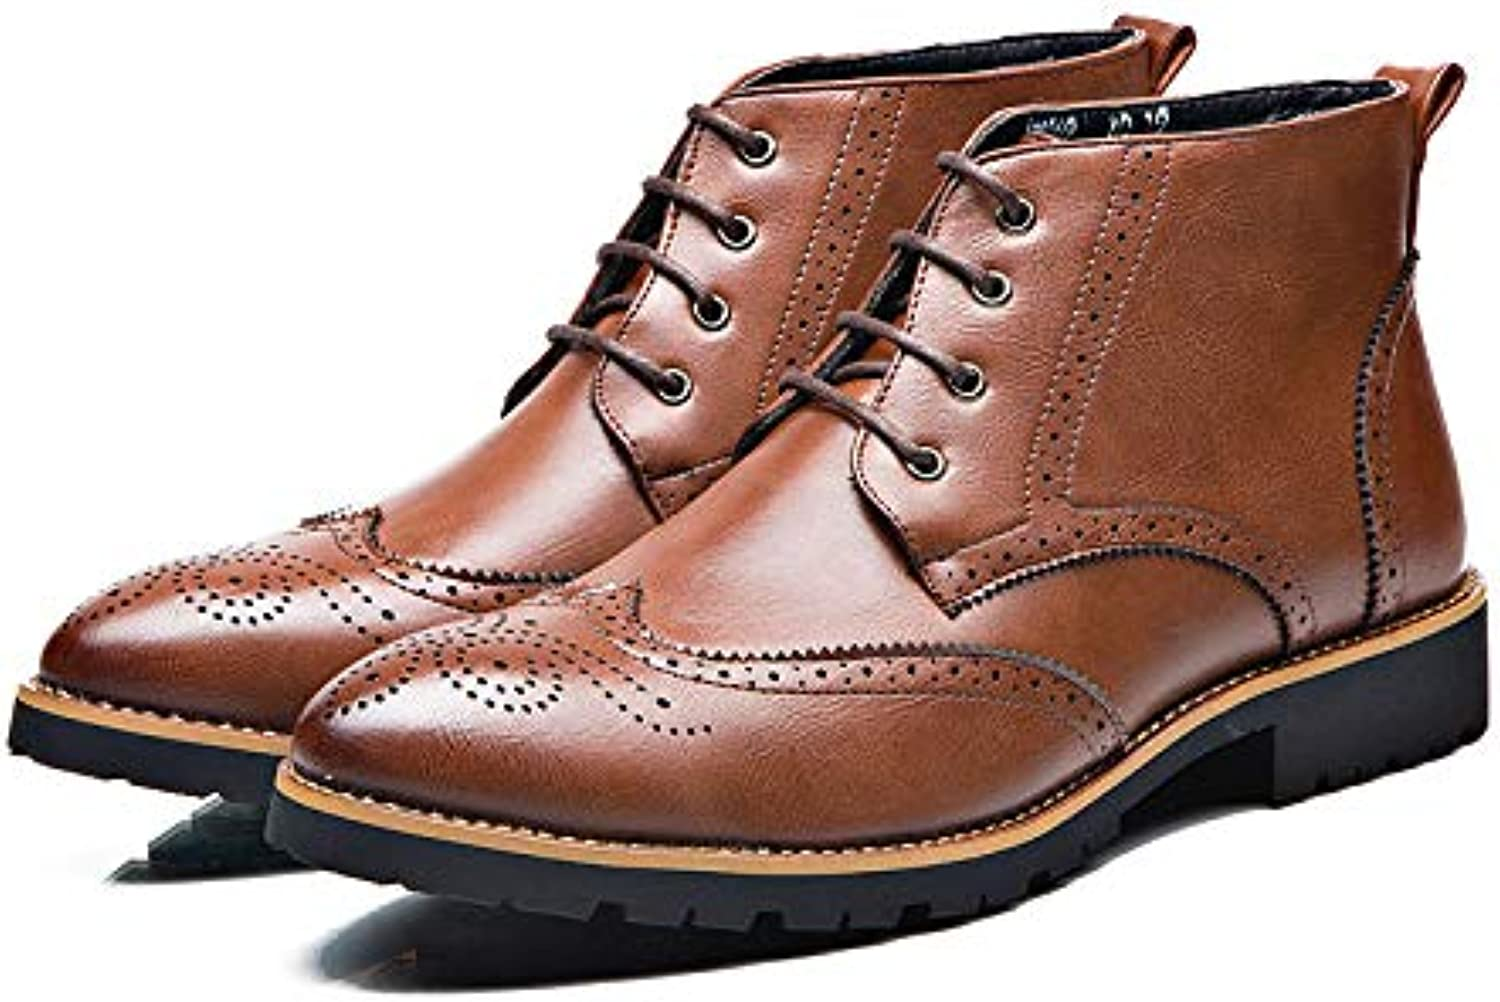 LOVDRAM Boots Men's Martin Boots Men'S Booties Fashion Thick Brock Men'S Boots Carved Tooling Boots Men'S shoes